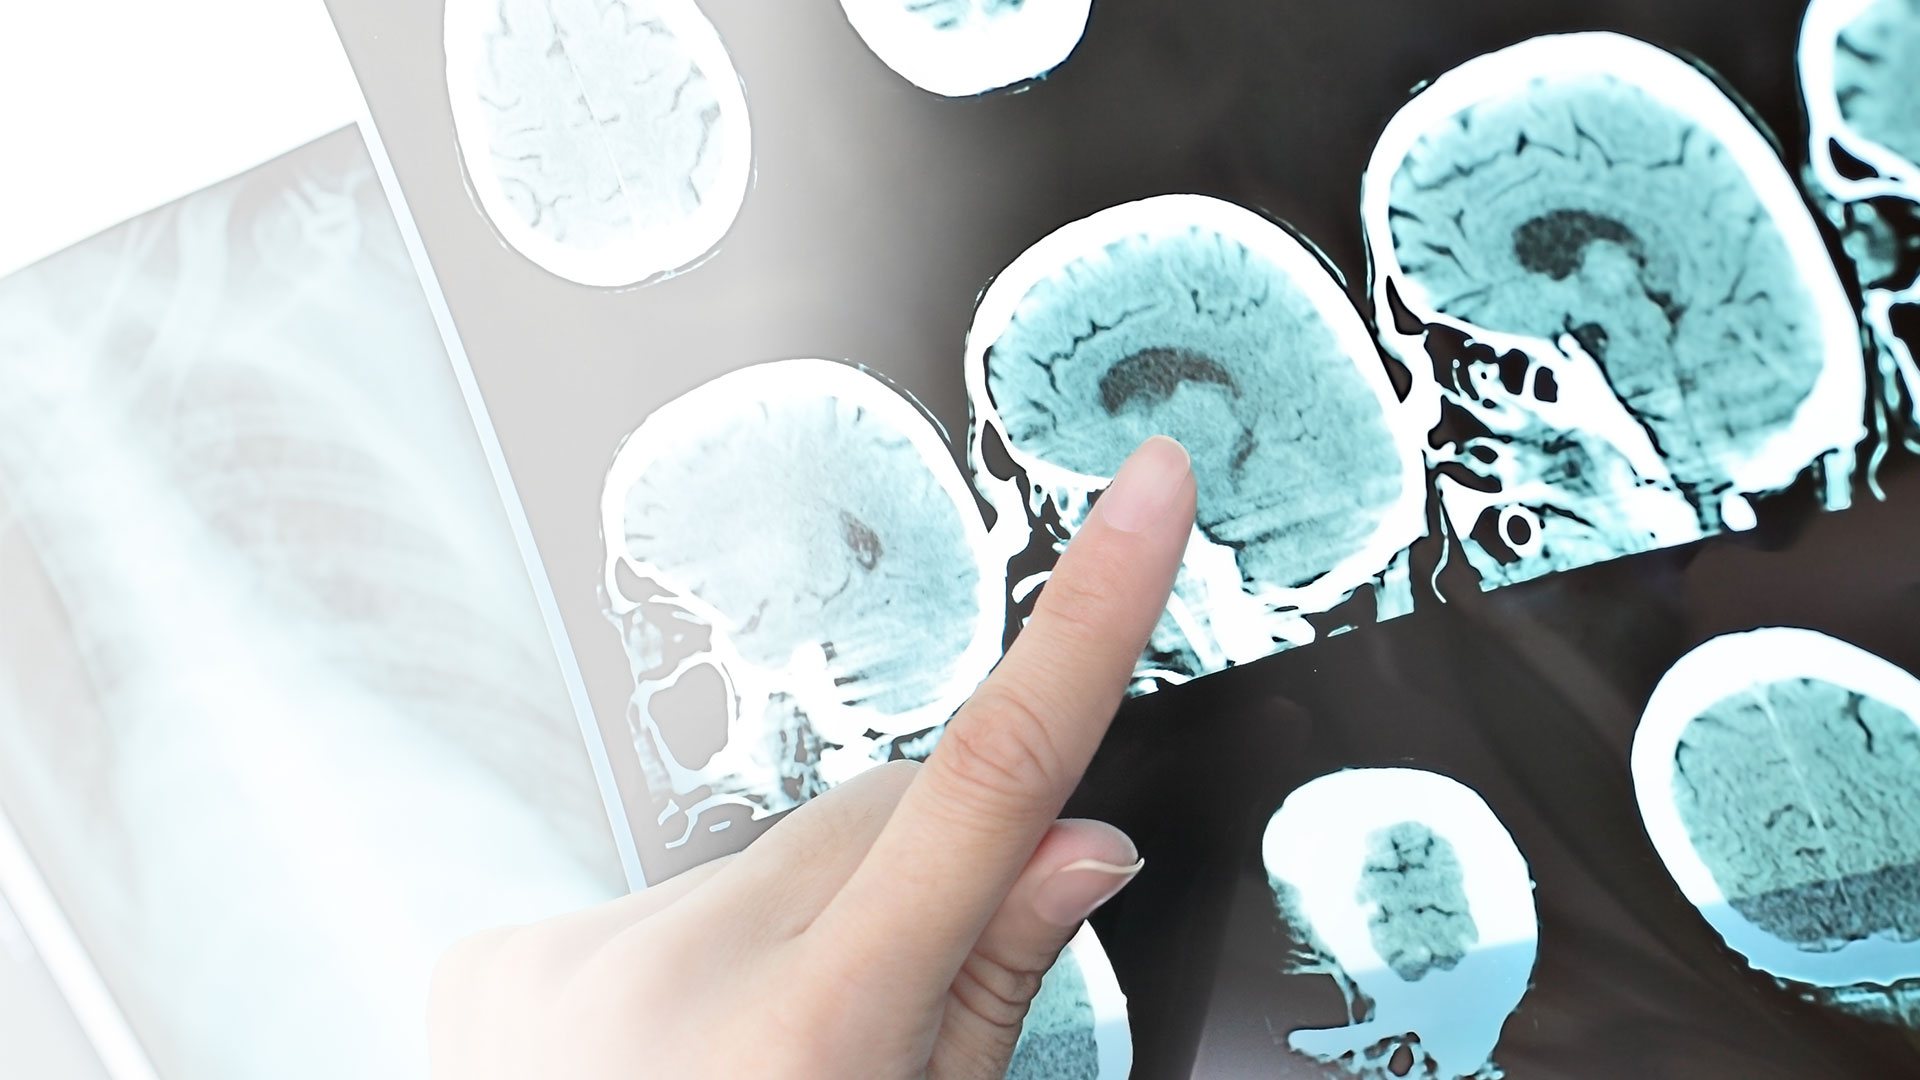 MRI first used to diagnose MS